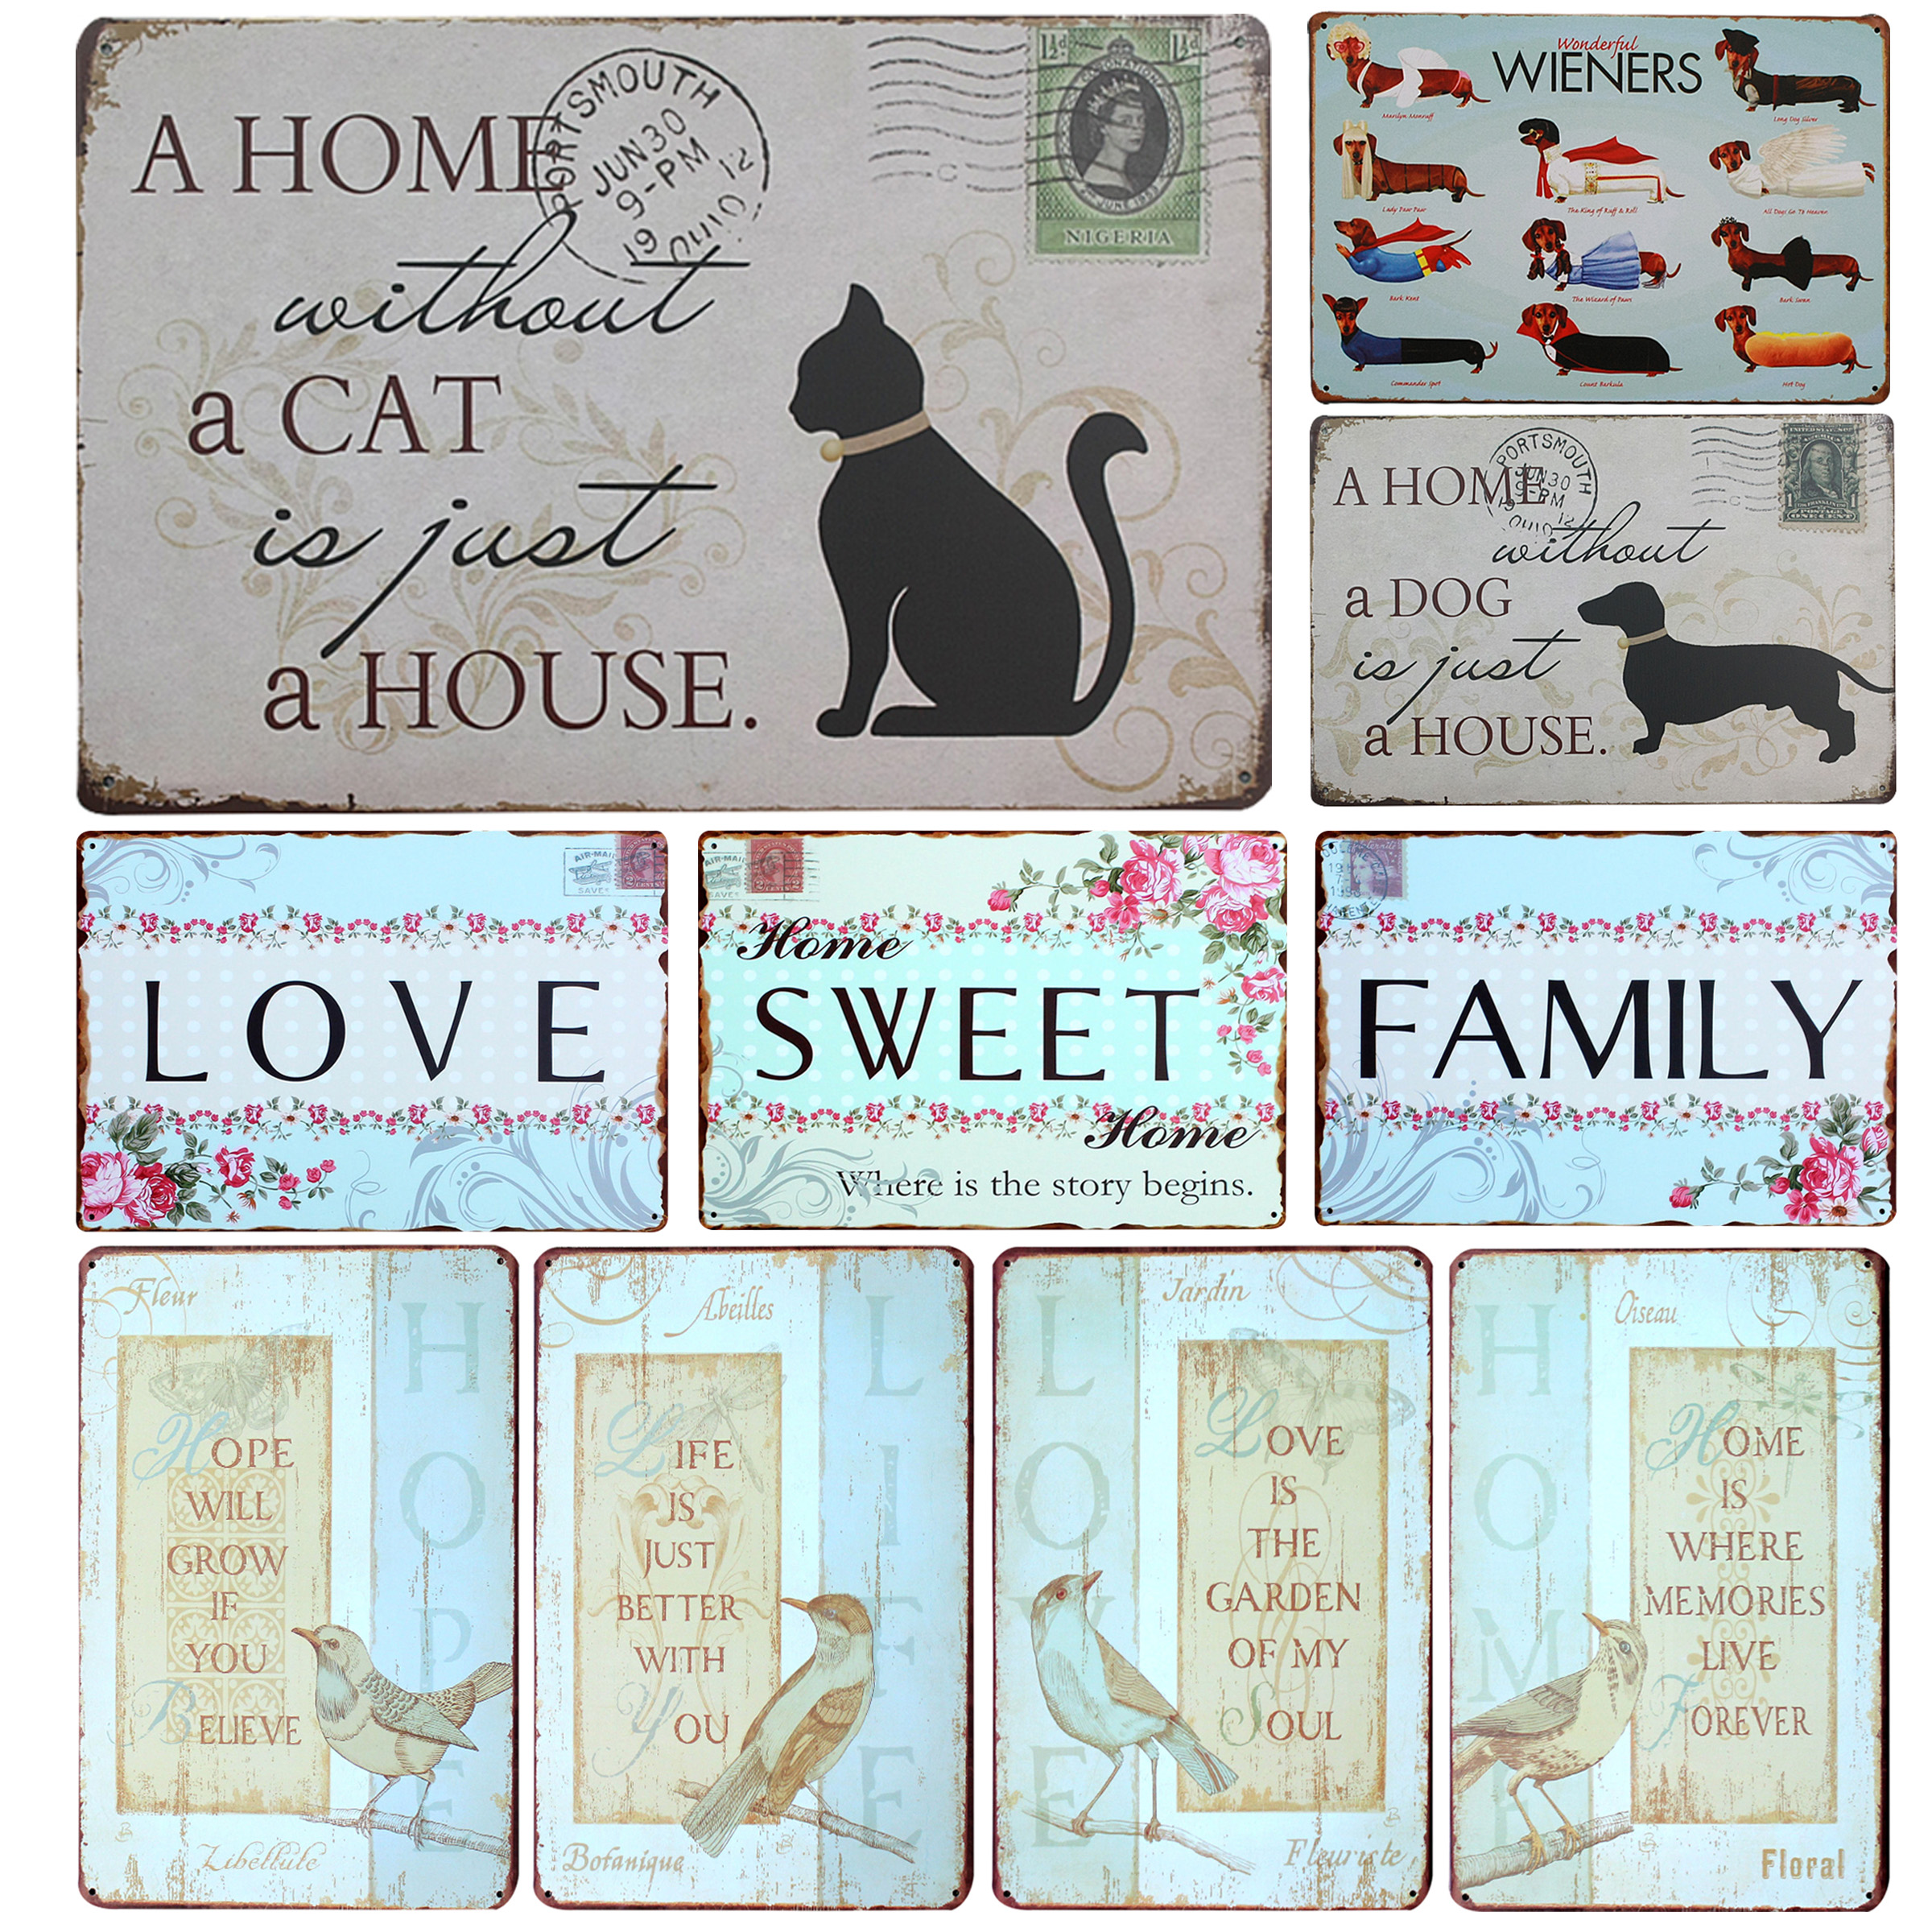 A Home Without A Cat Is Just A House Metal Sign Vintage Home Decor Tin Sign 8x12 Metal Plate Family Wall Decor Metal Plaque